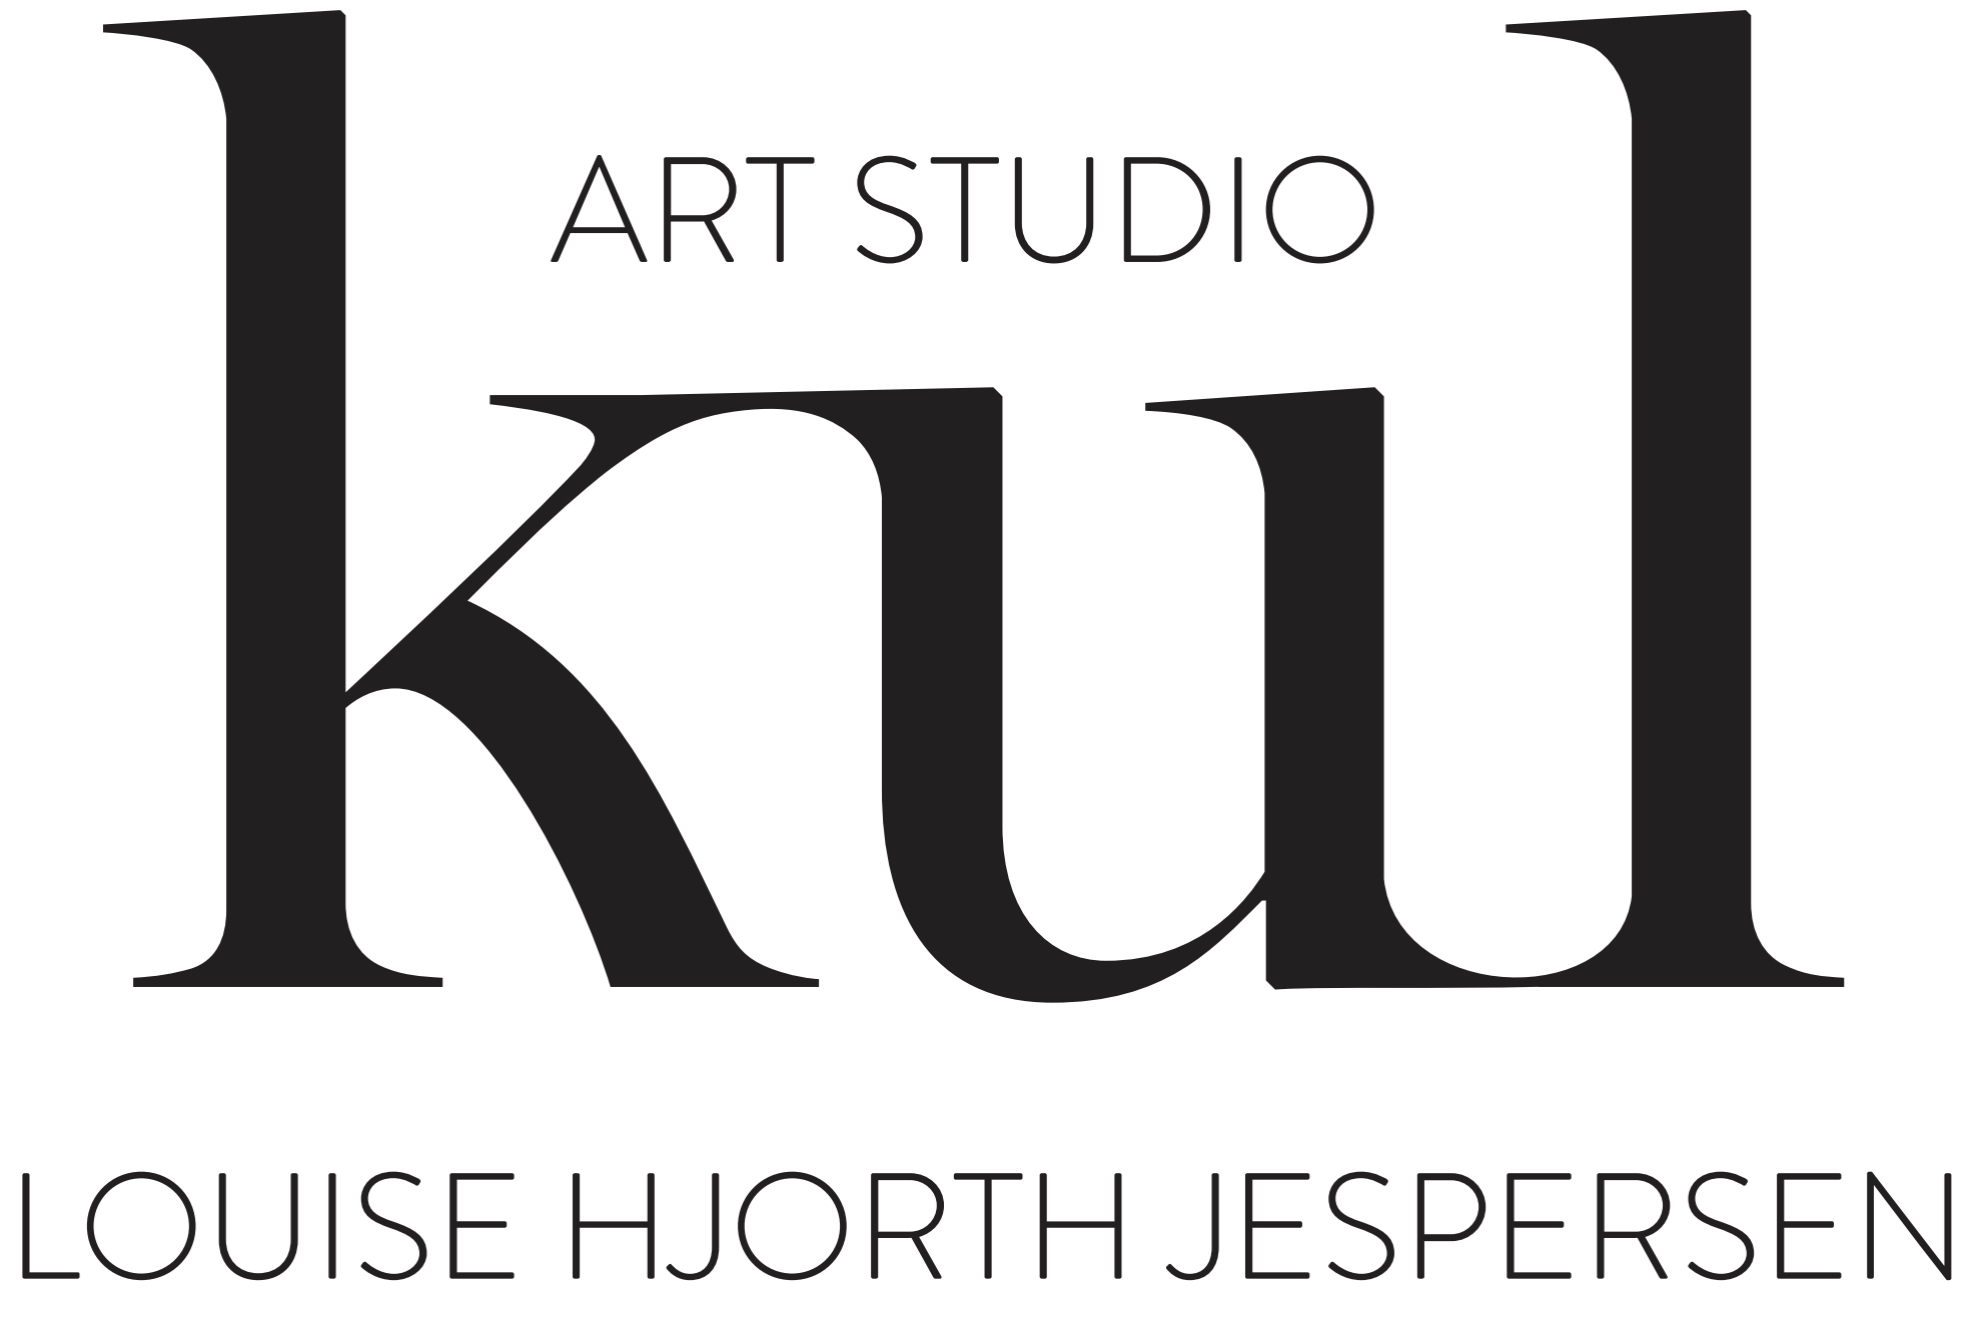 ART STUDIO KUL